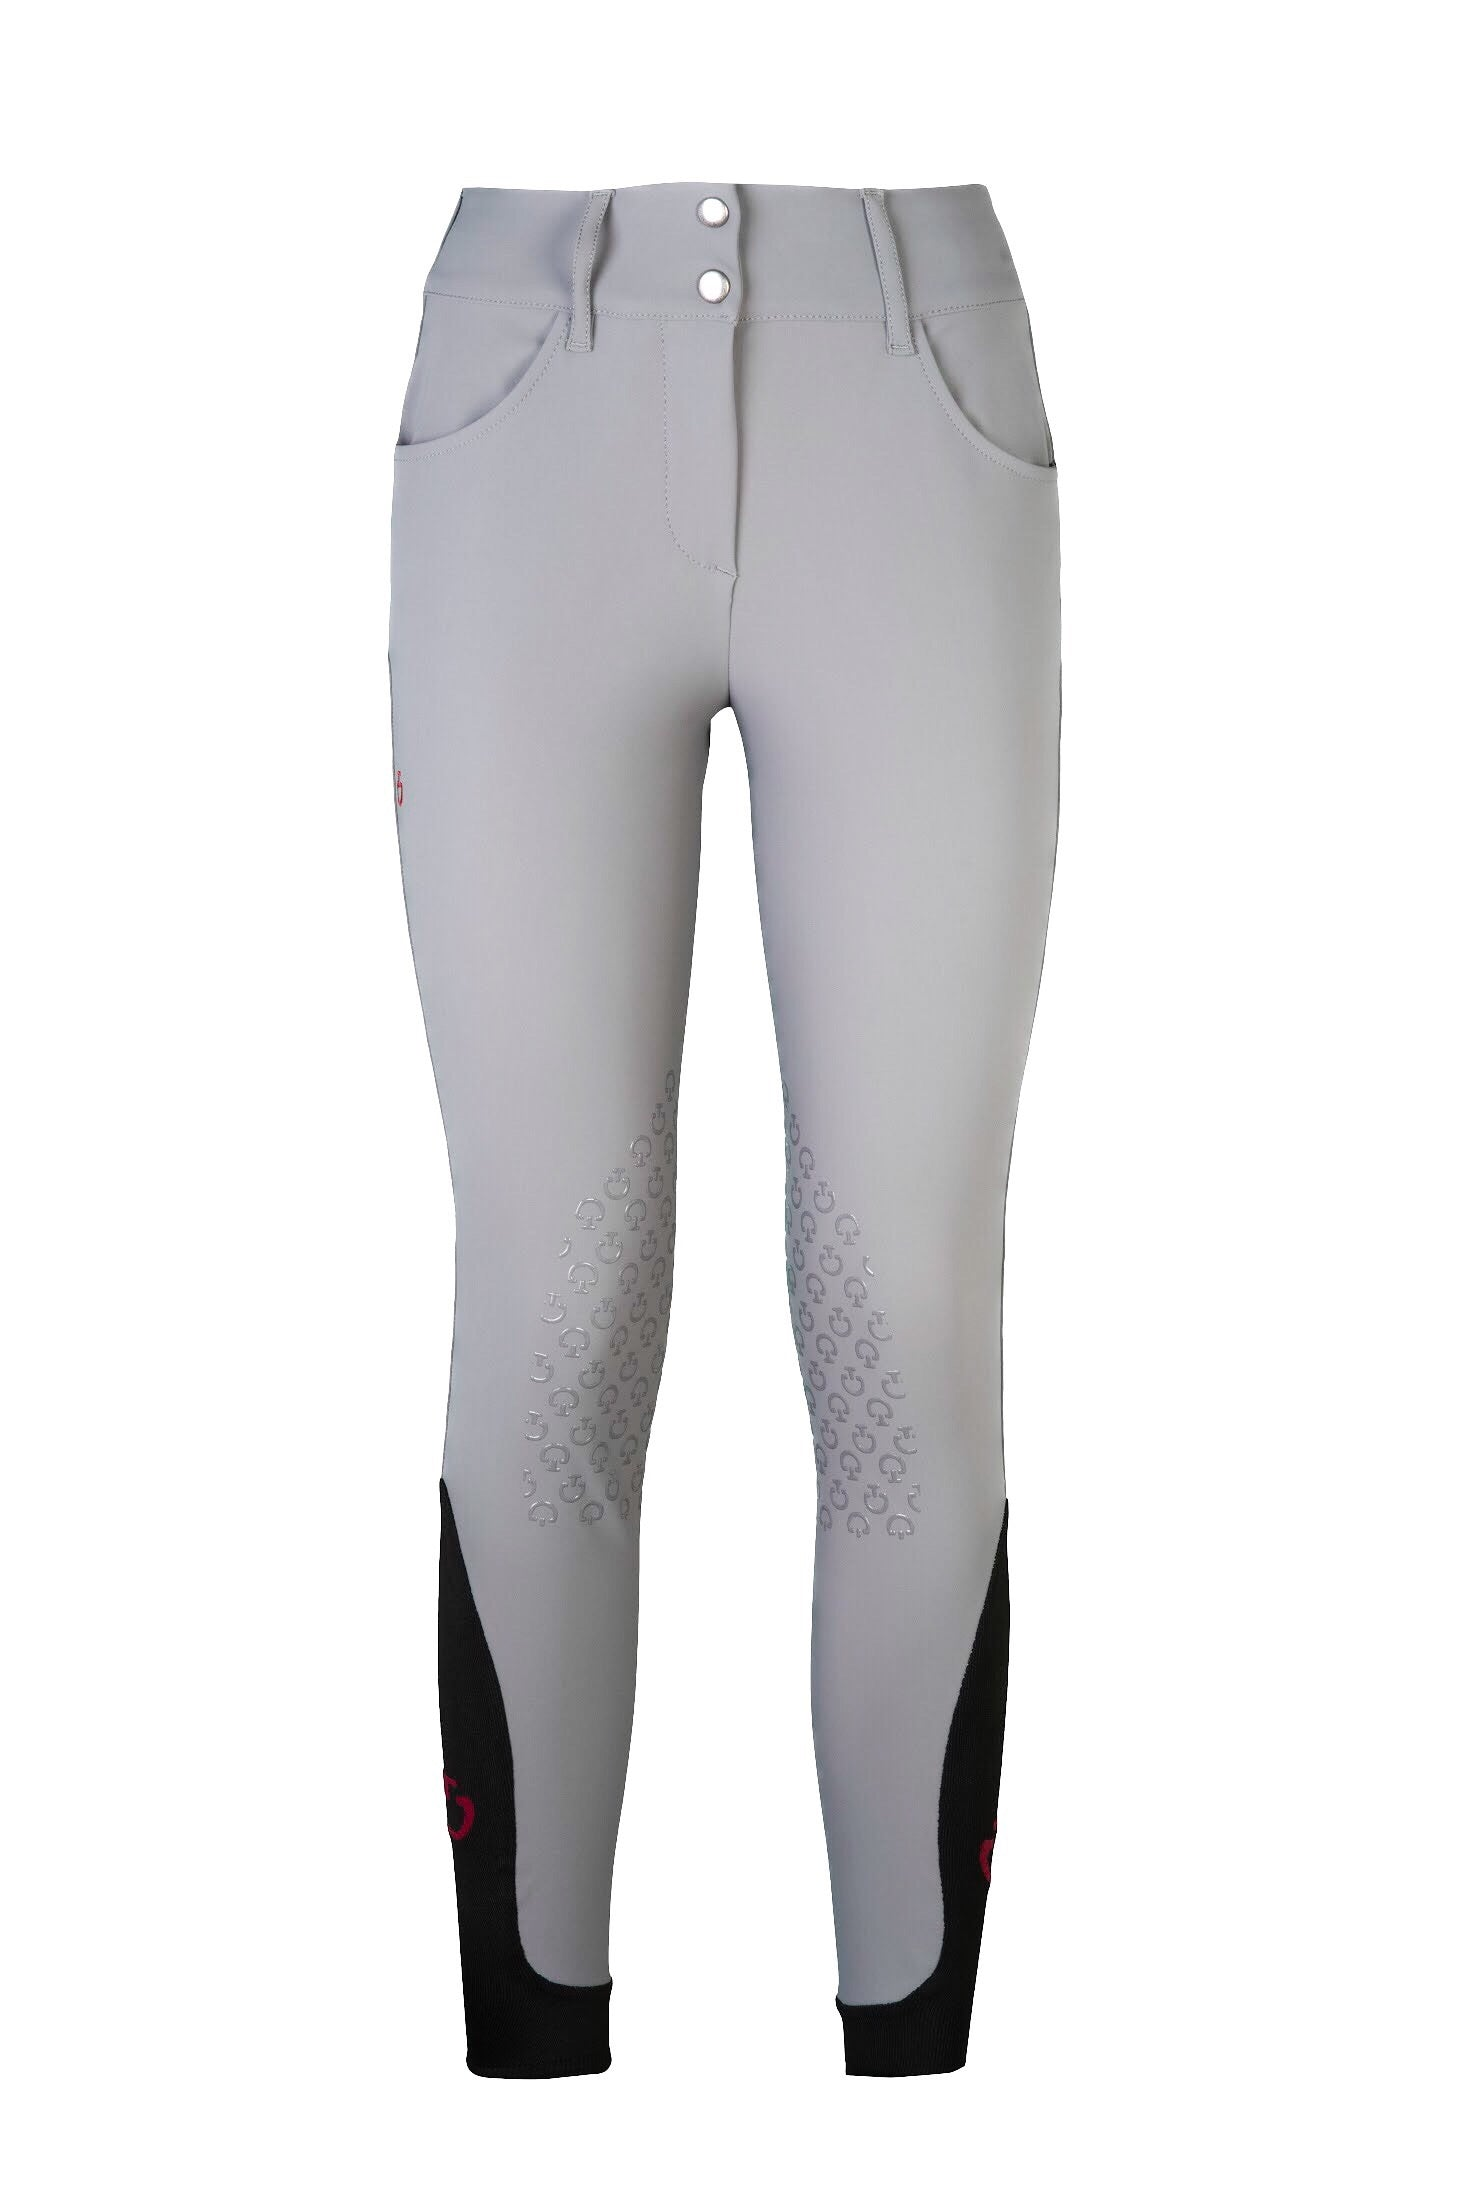 Cavalleria Toscana American Breeches Light Grey - Luxe EQ